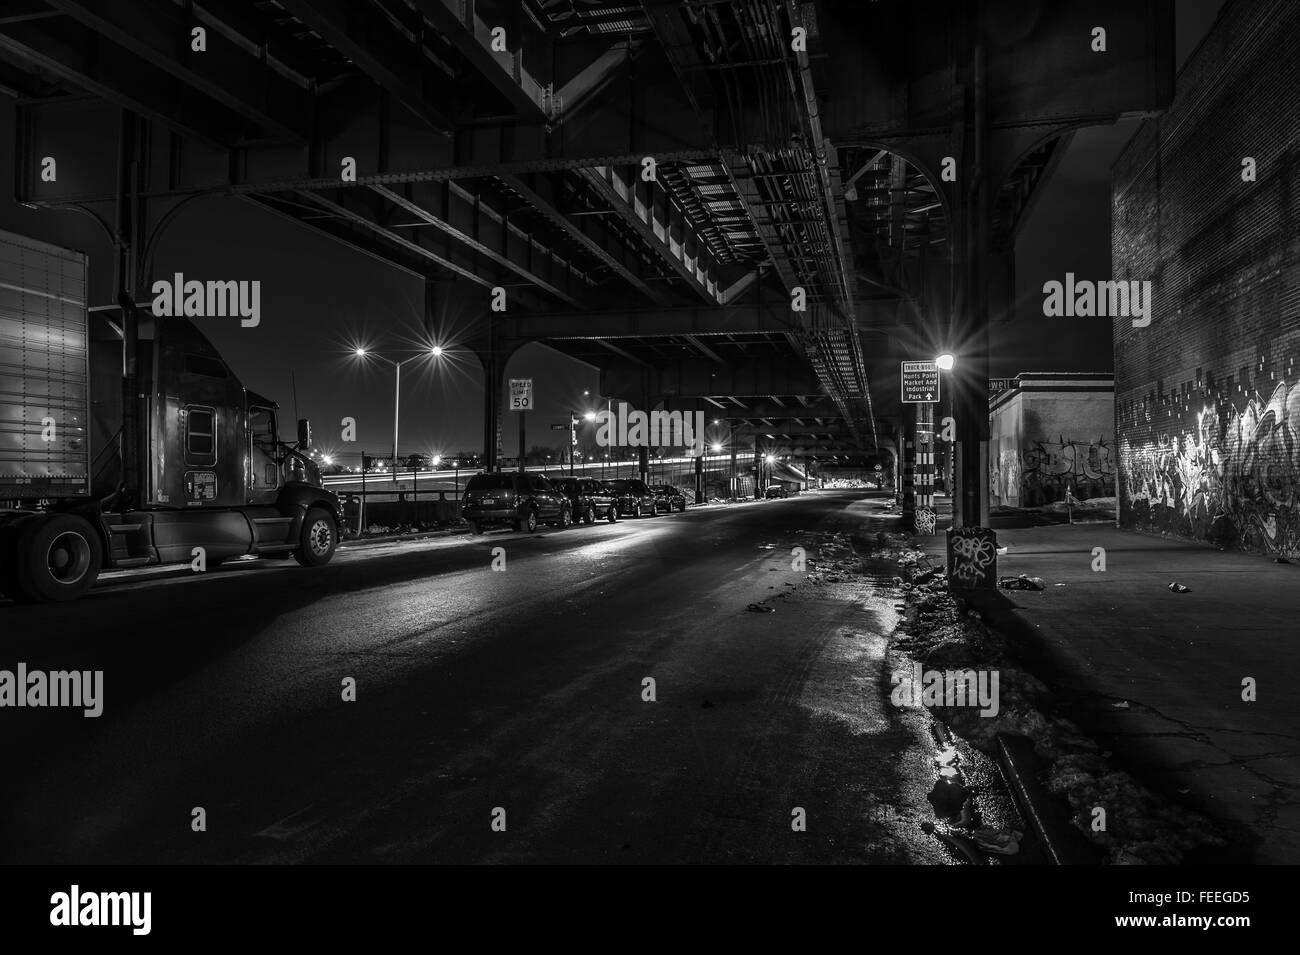 B&W Night images of street in the Bronx New York - Stock Image